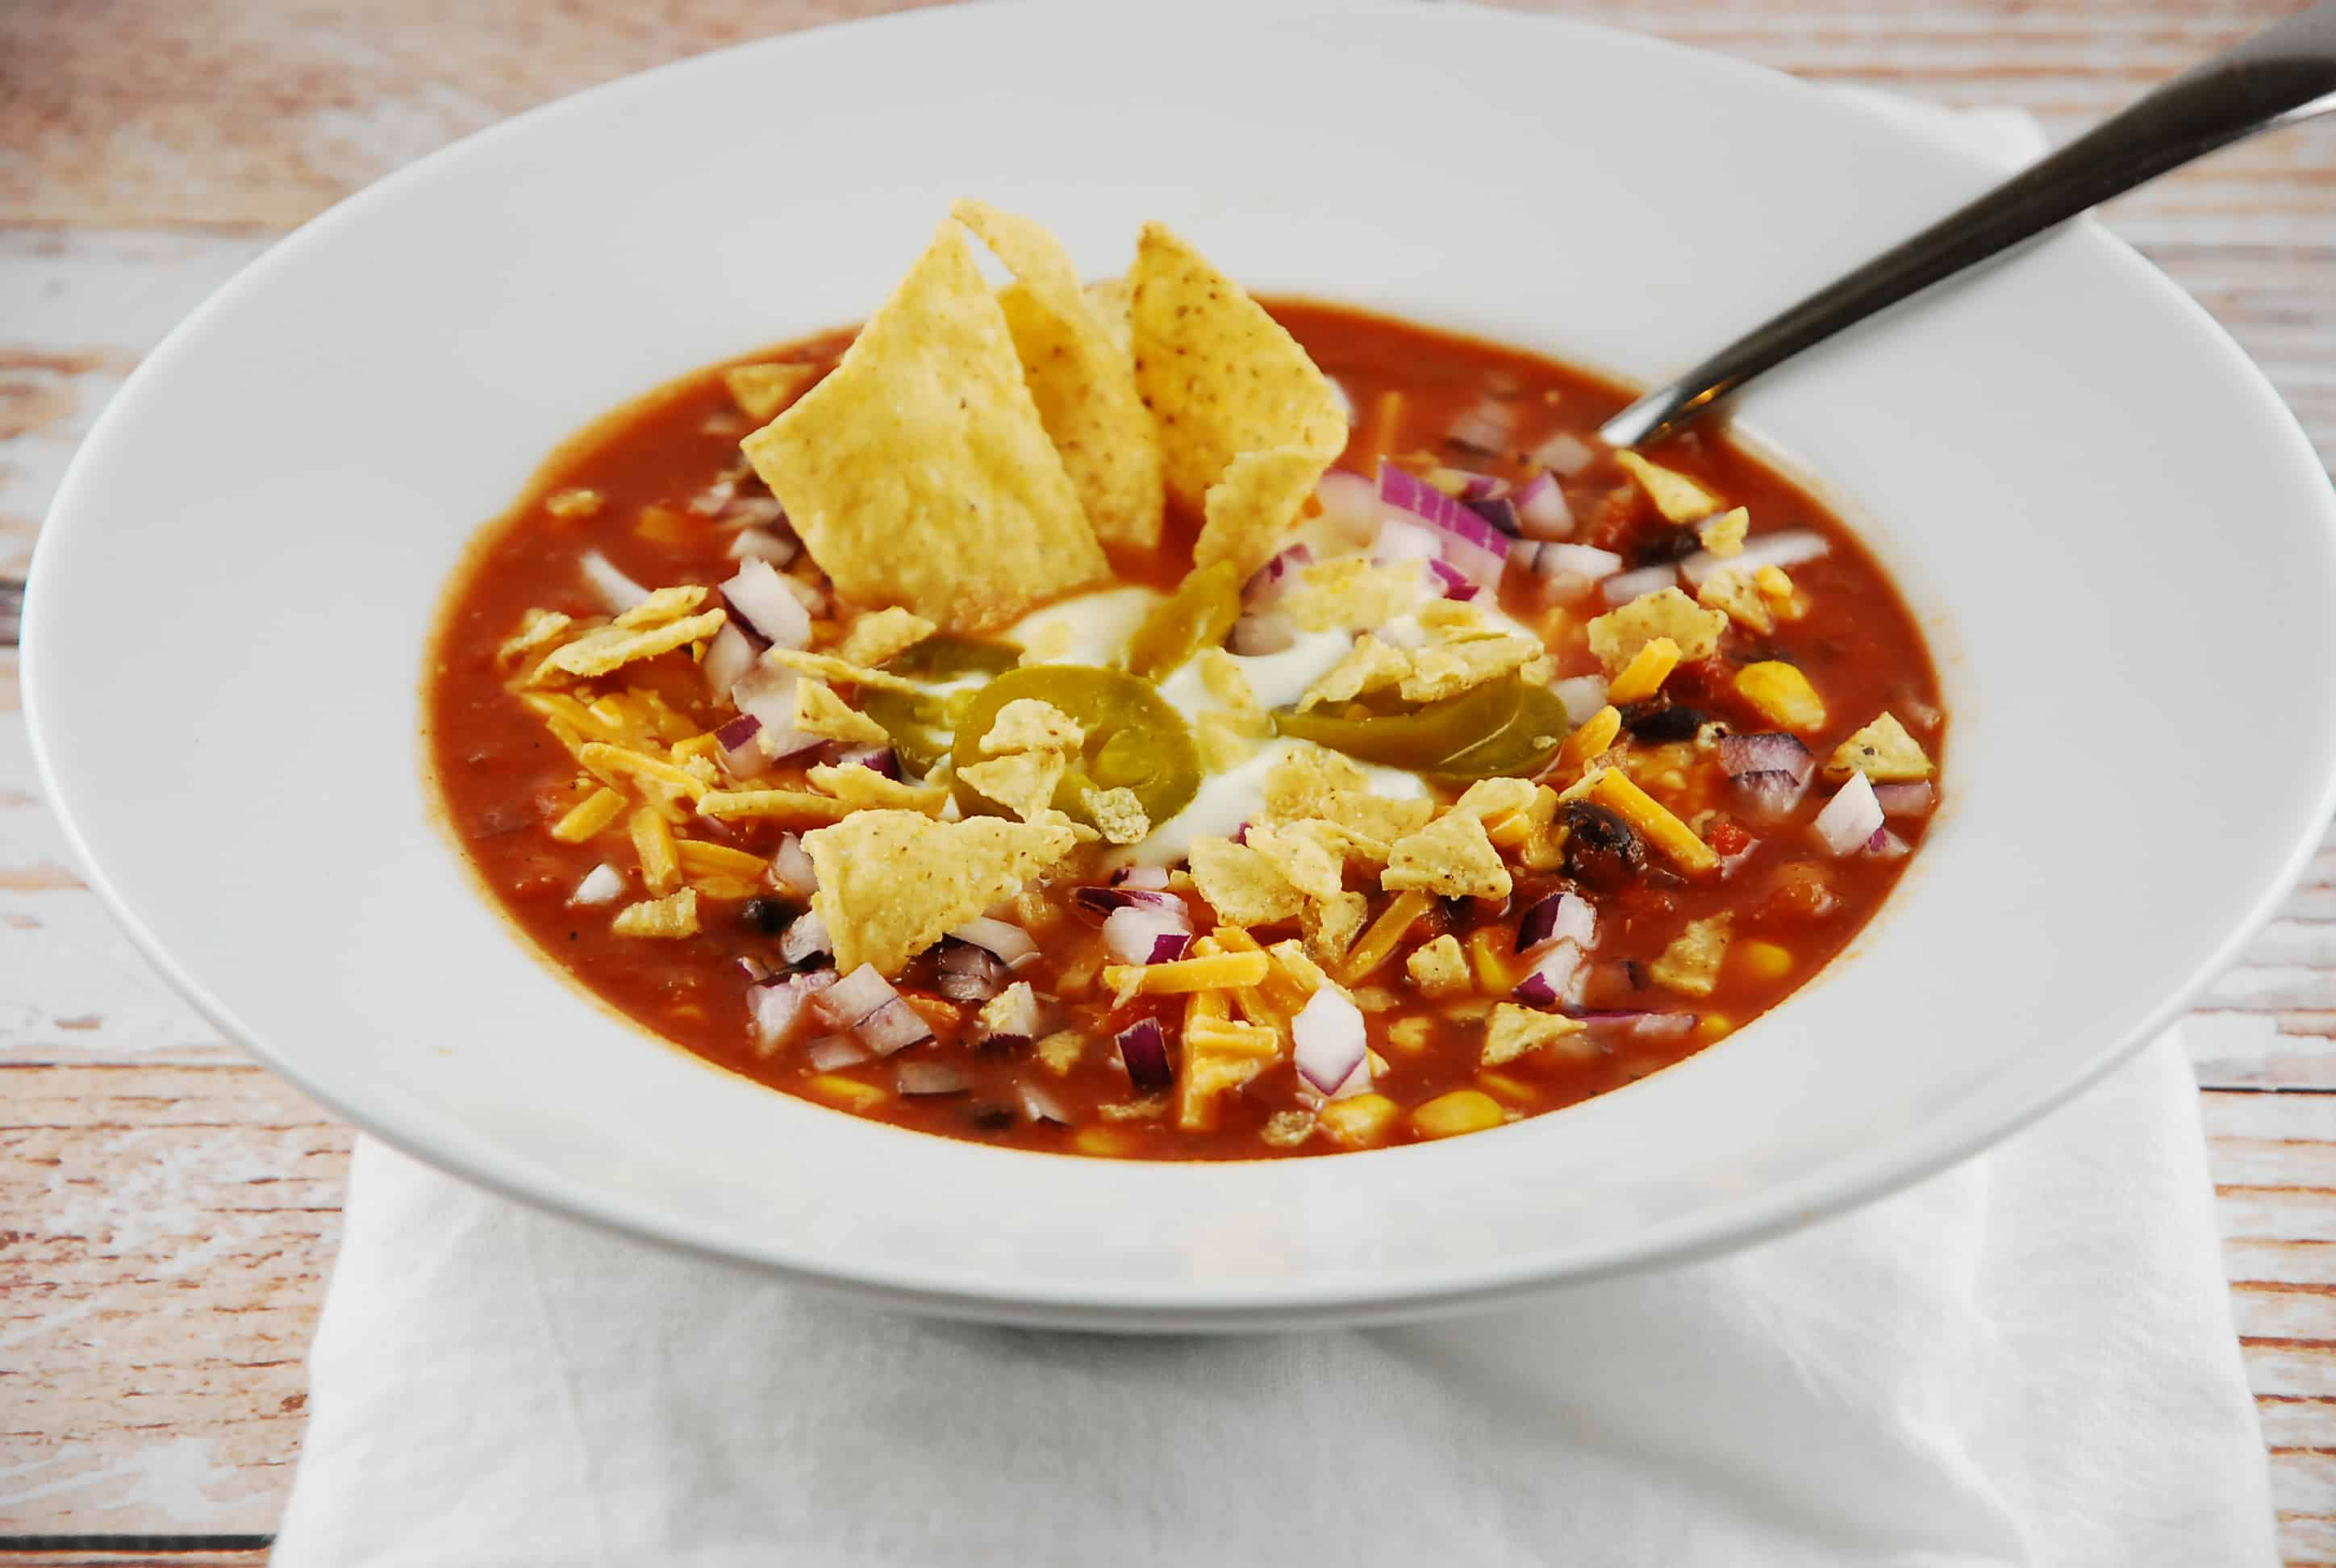 Crockpot Chicken Tortilla Soup Recipe - 6 Points + - LaaLoosh